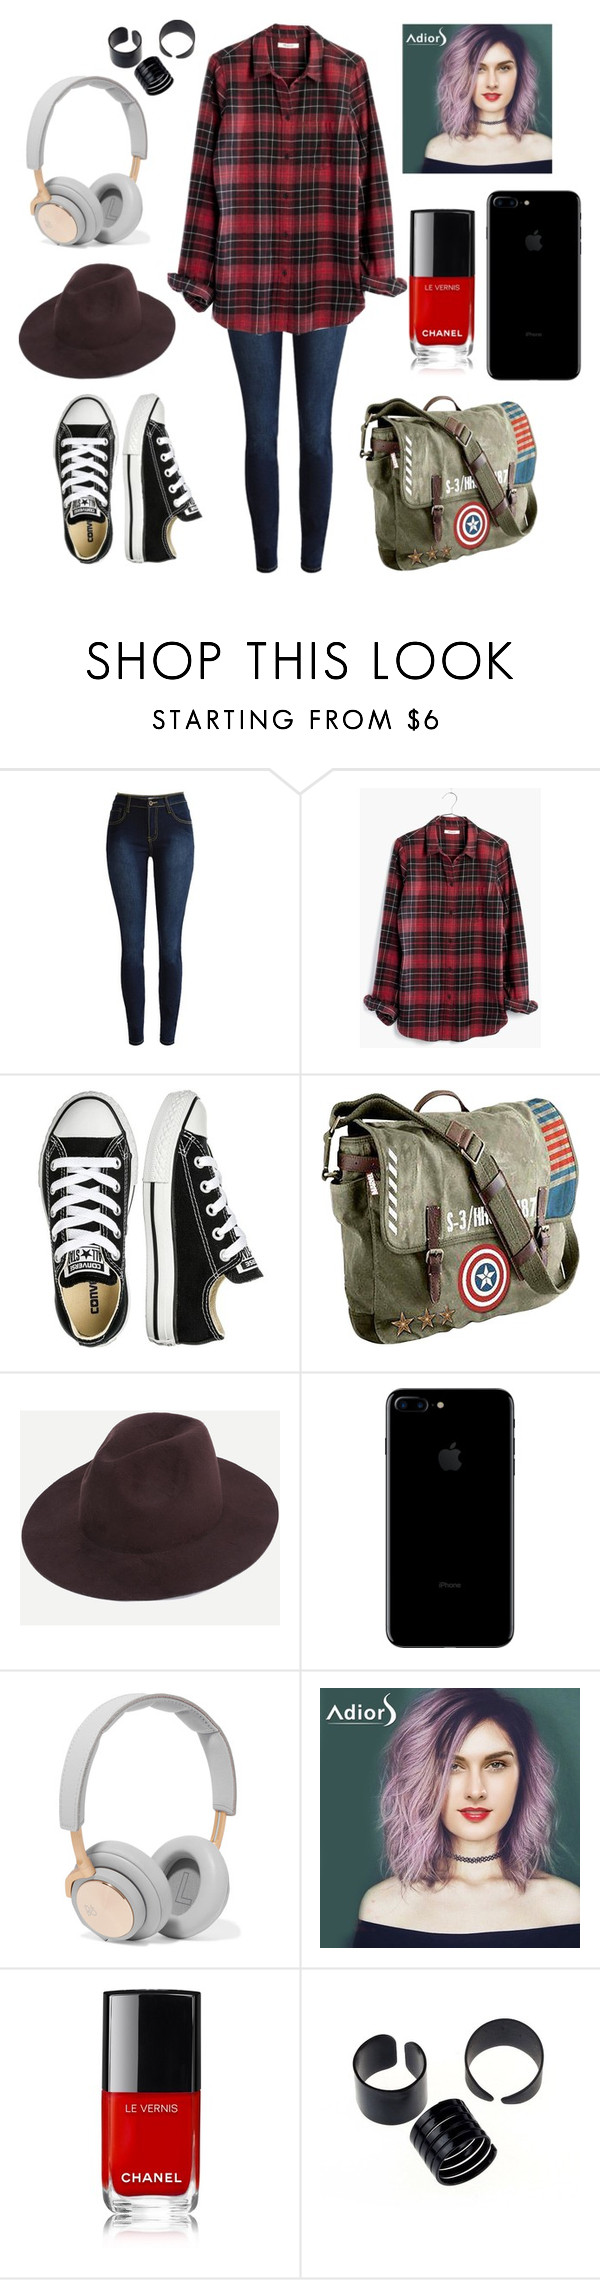 """""""Hey!"""" by pinkdhankar ❤ liked on Polyvore featuring Madewell, Converse, Marvel and B&O Play"""